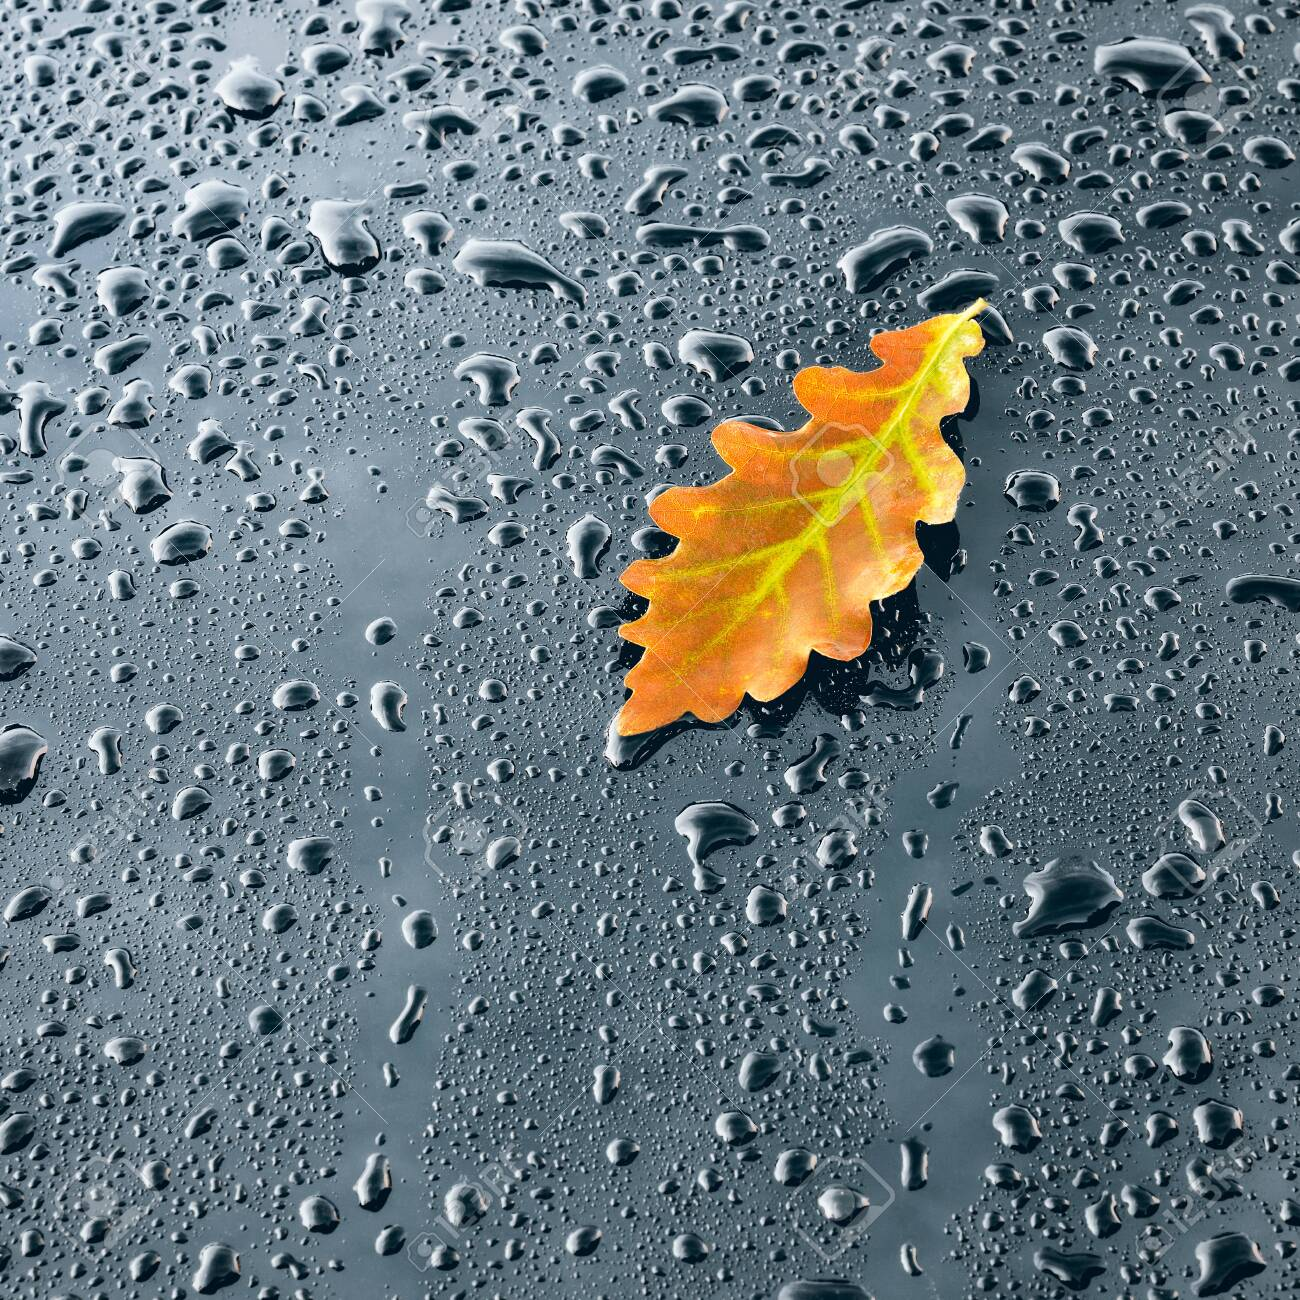 Water Drops on Polished Car paint with Leaf - 113575277